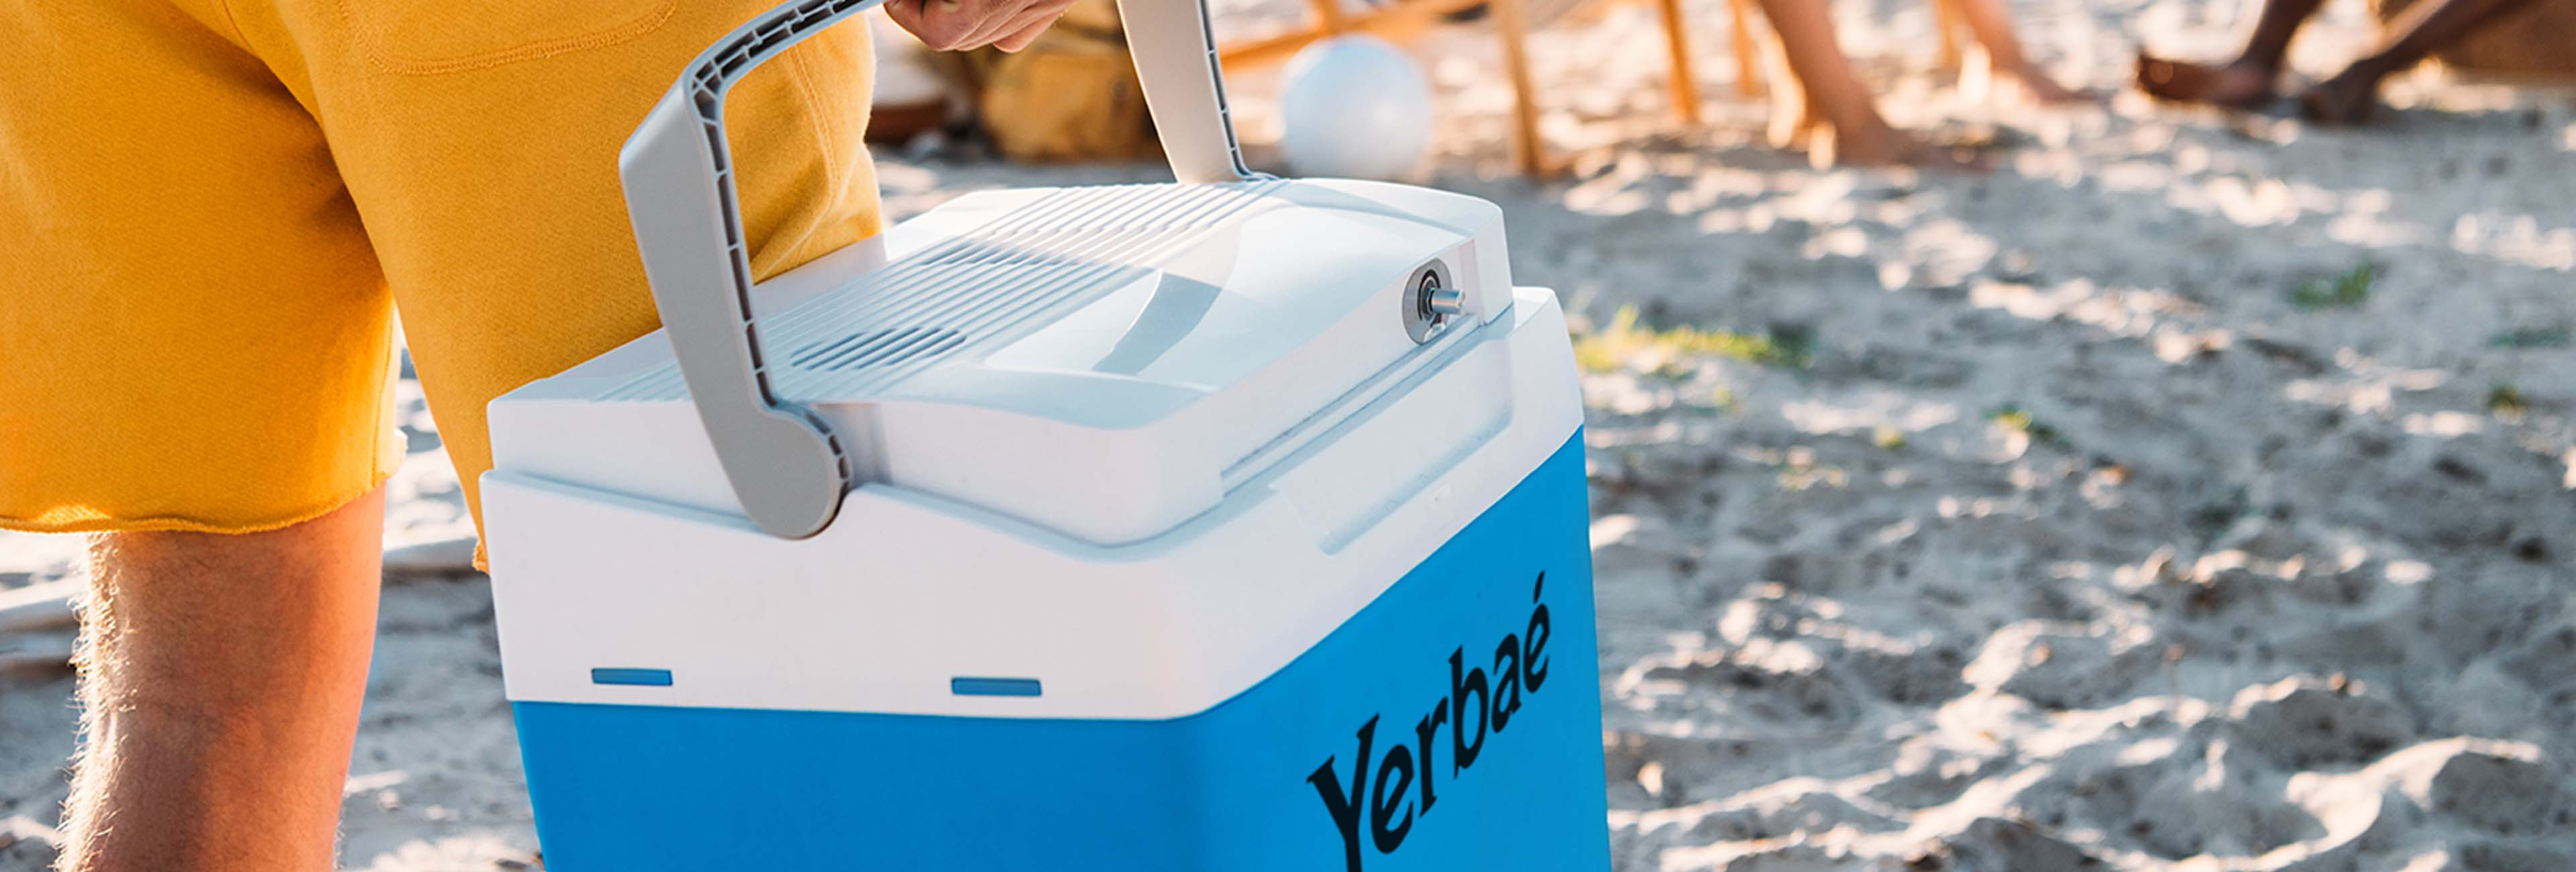 yerbae branded cooler at the beach